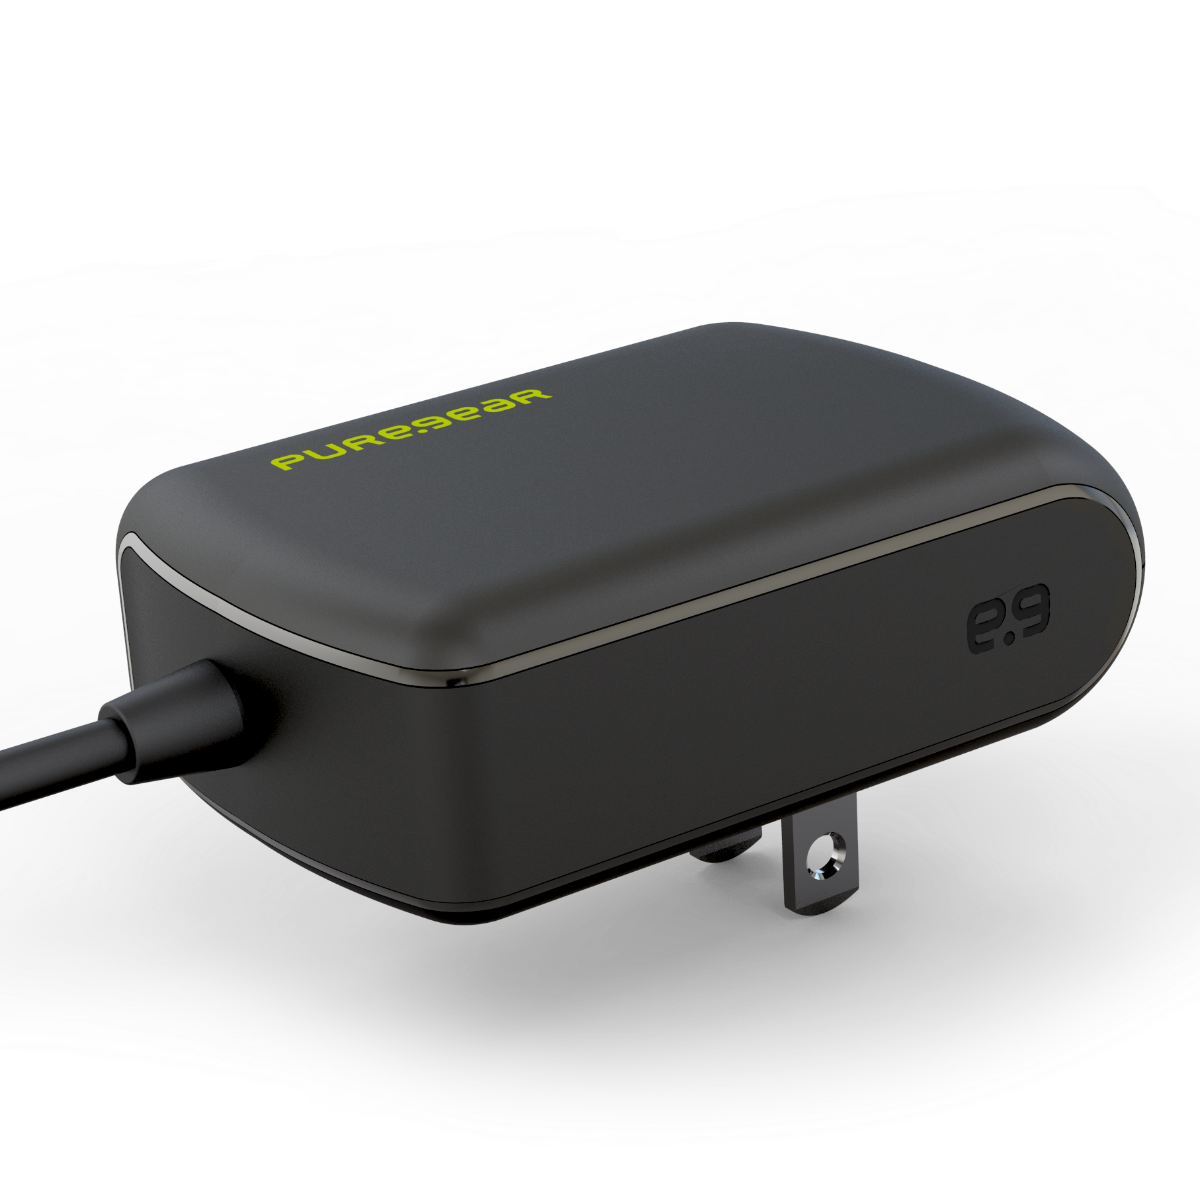 15w USB-C Wall Charger - Black